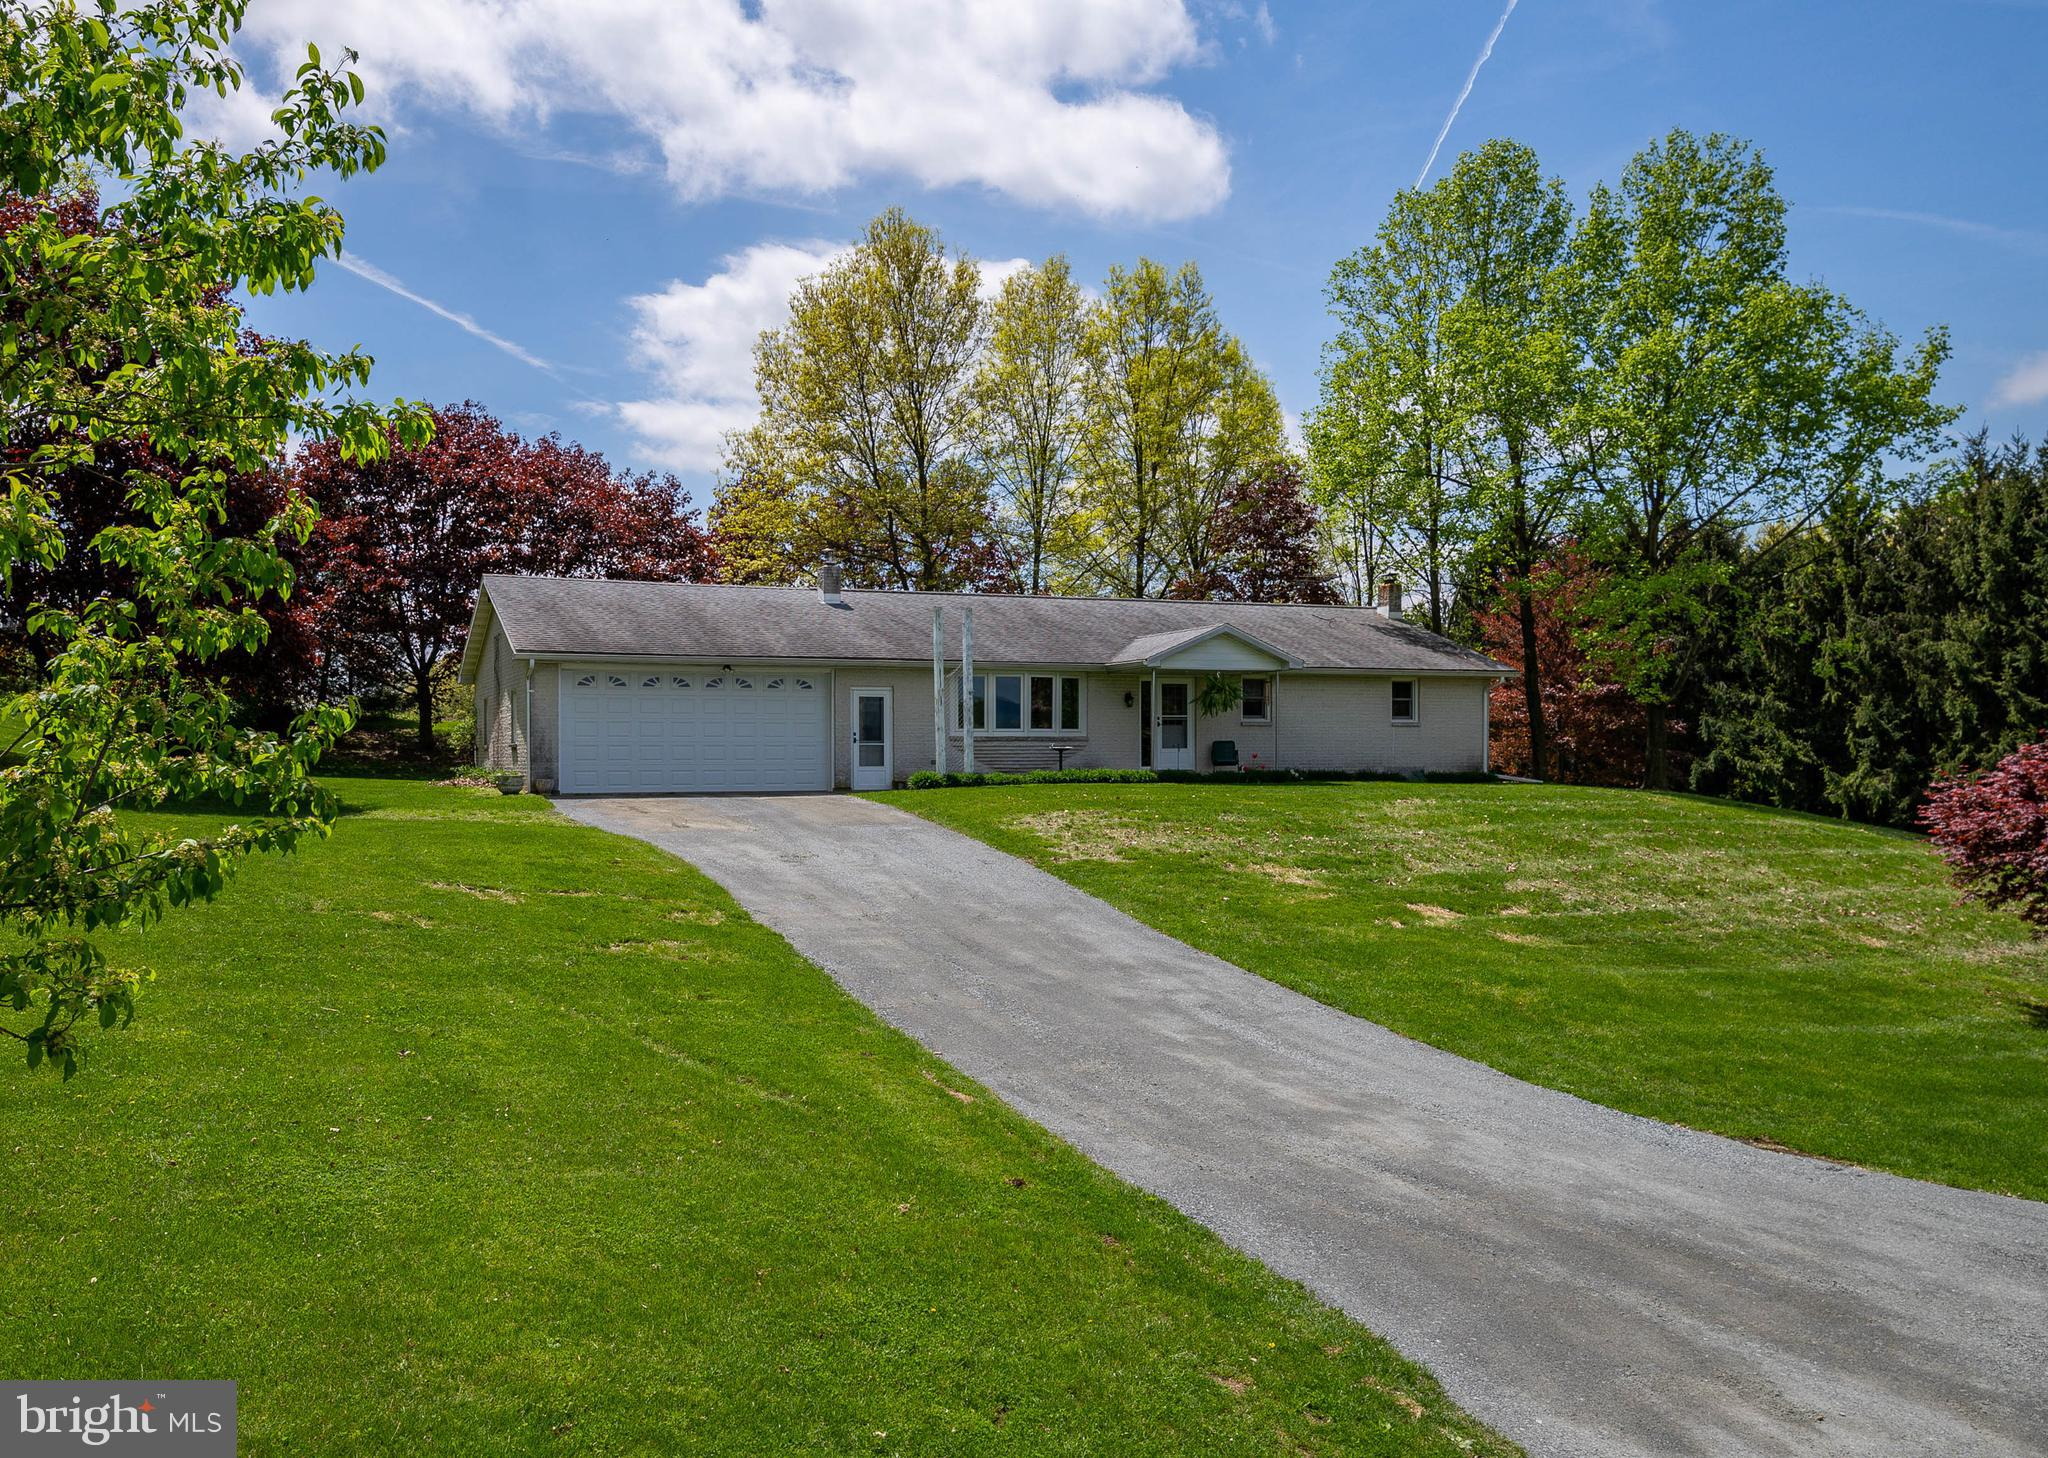 443 HICKORY ROAD, MOHRSVILLE, PA 19541